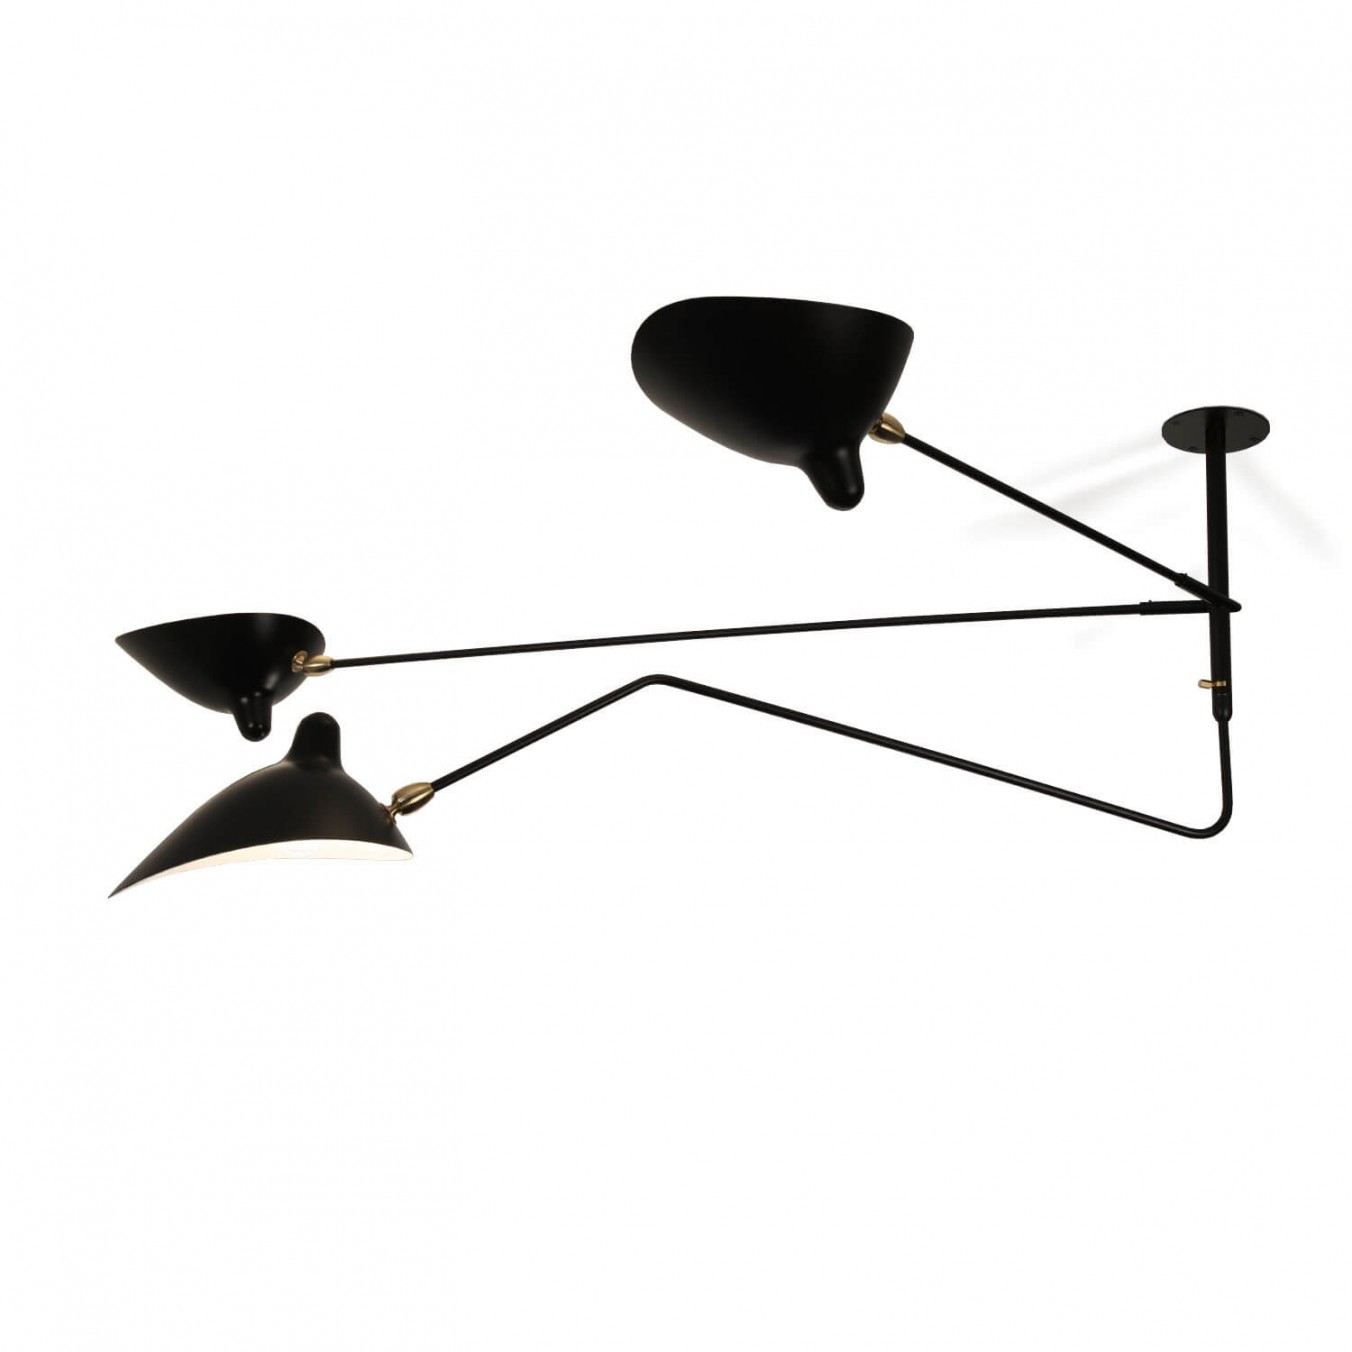 Ceiling Light with 2 still arm and 1 curved